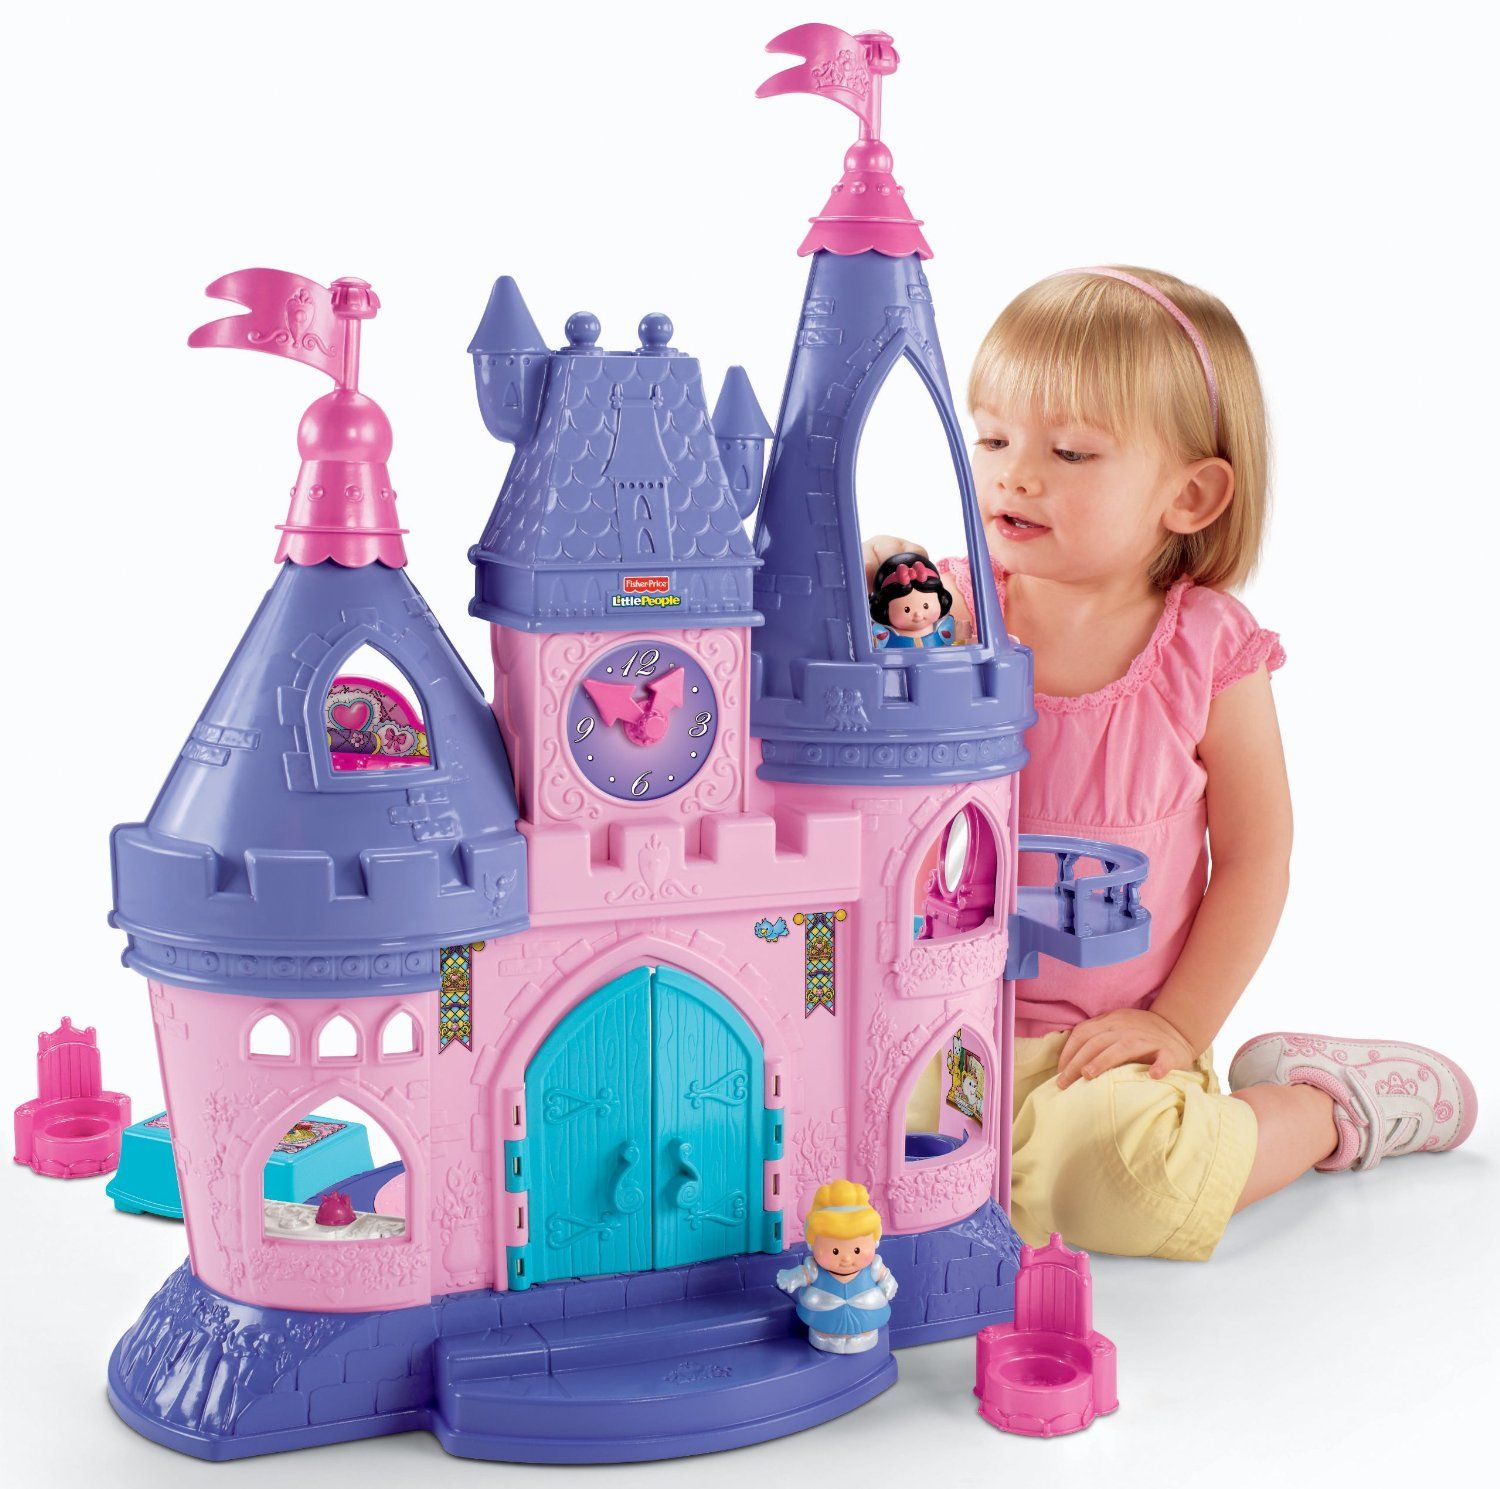 Top Gifts for Three Year Old Girl Pics